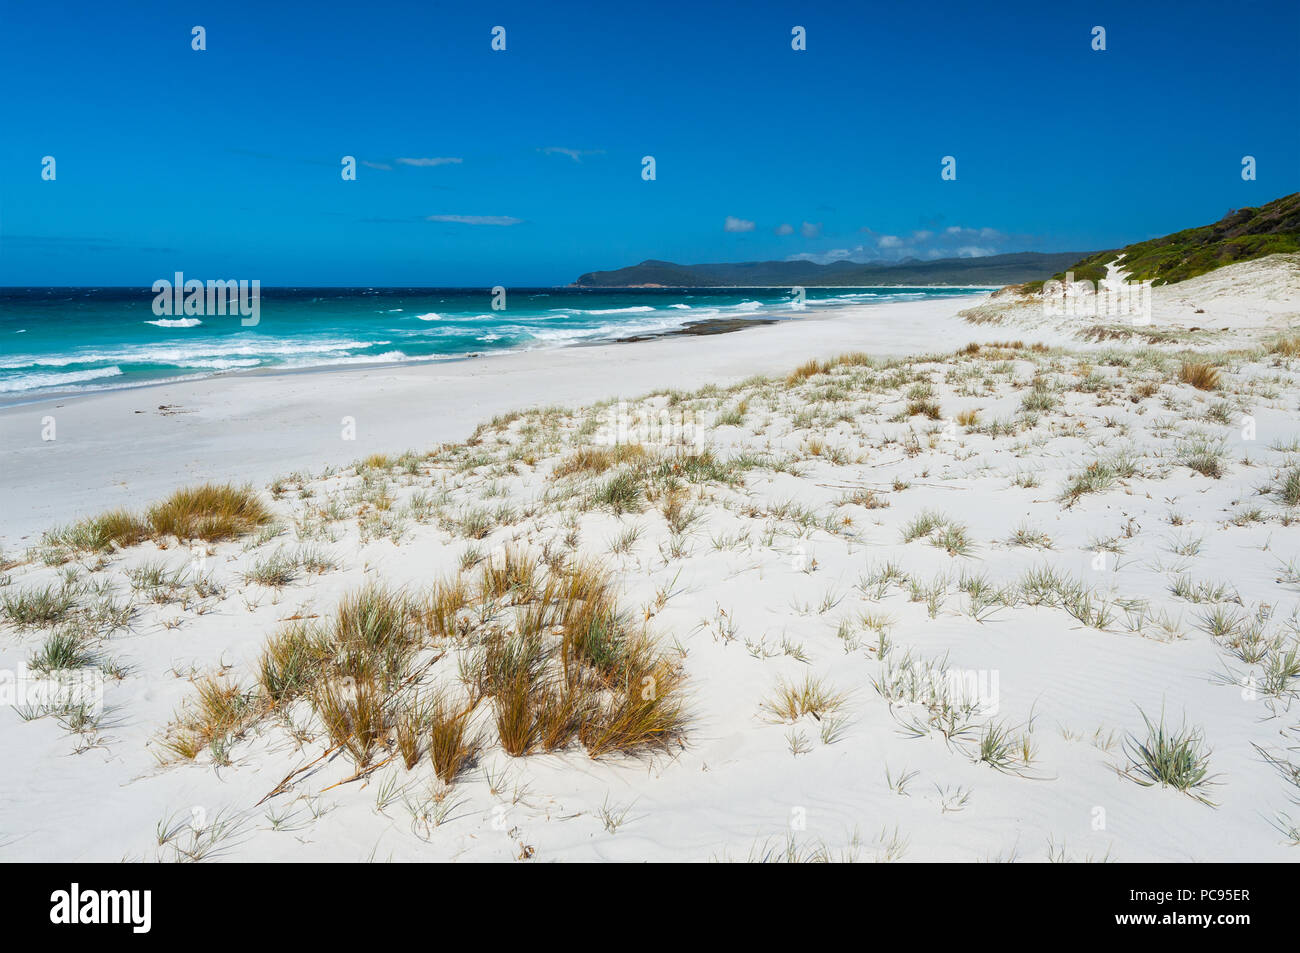 Beautiful beach scenery at Friendly Beaches in Freycinet National Park. - Stock Image